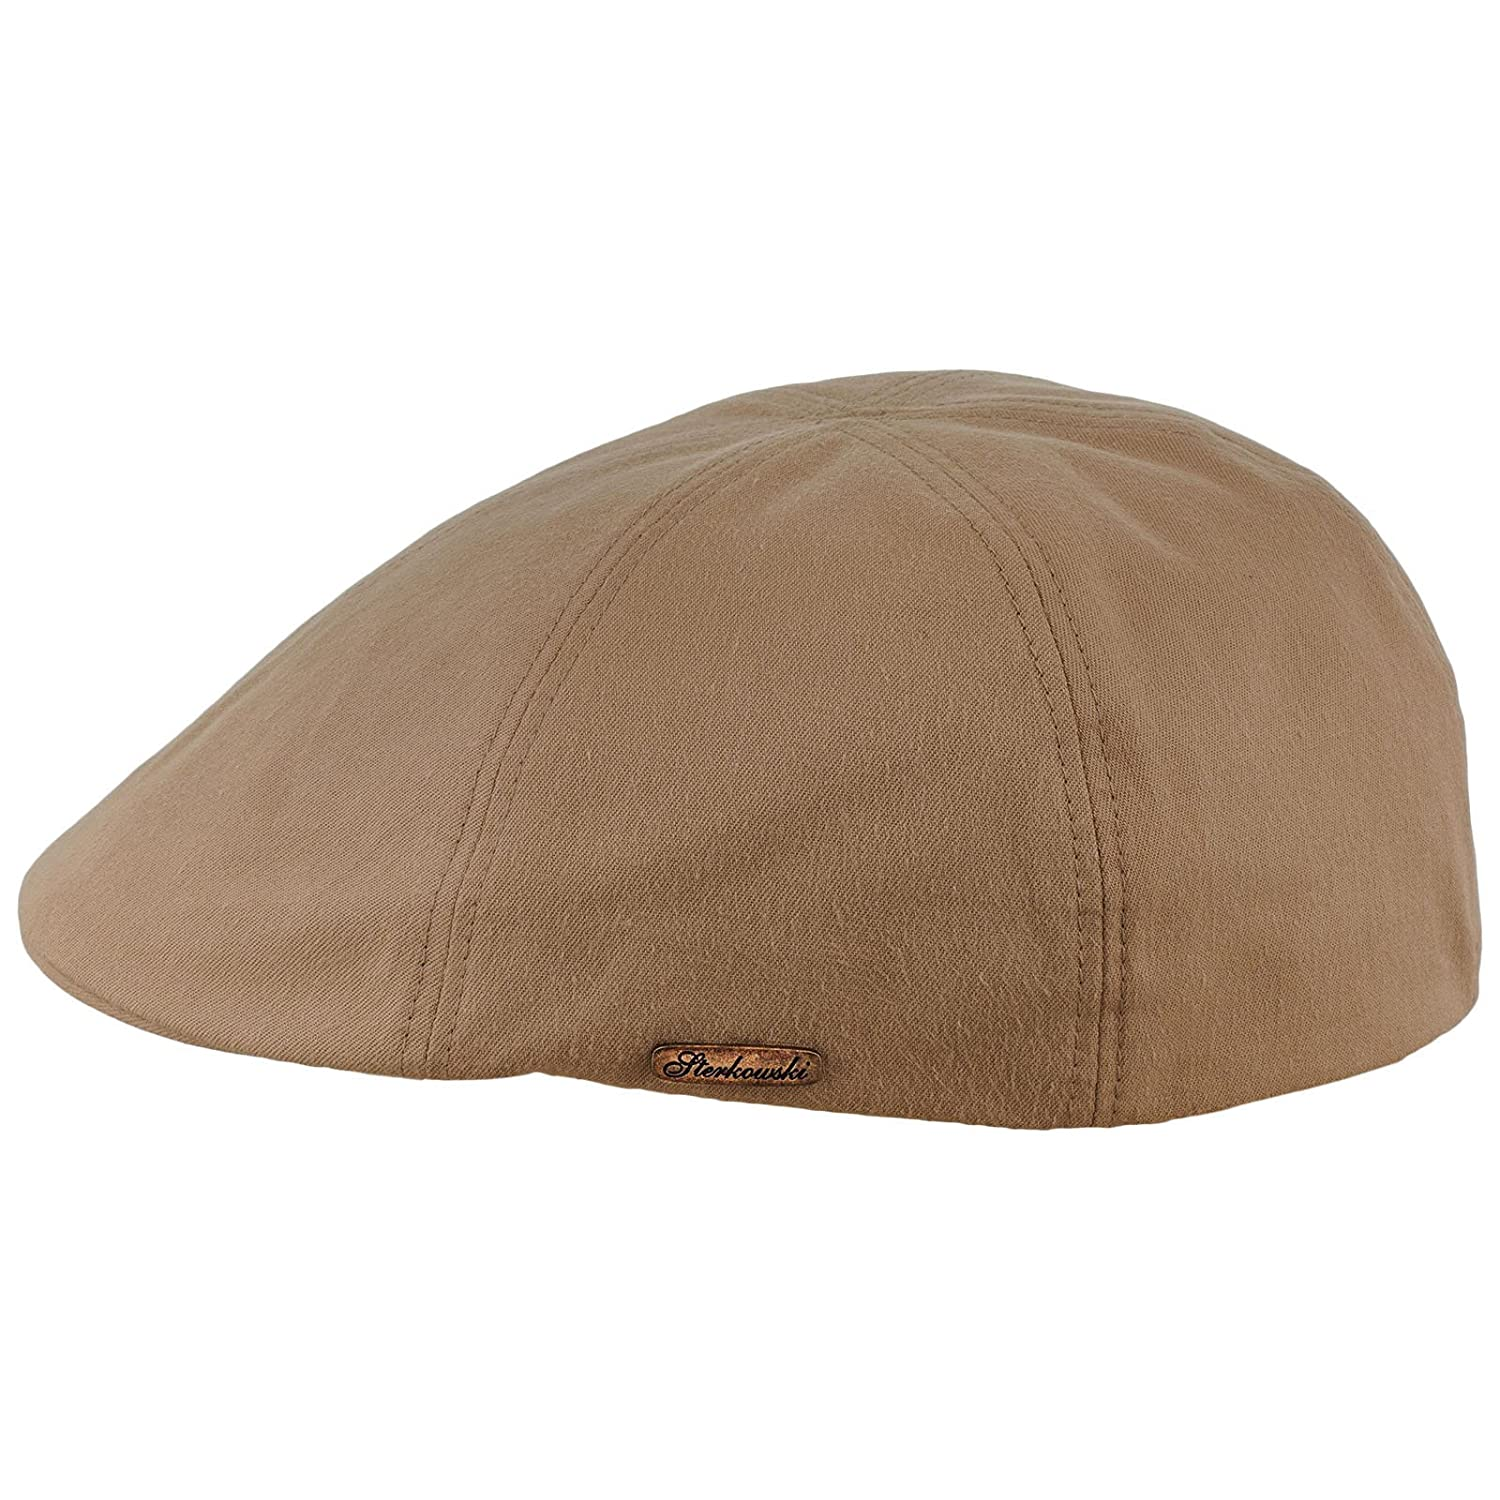 Sterkowski Light Breathable Emerizing Cotton 6 Panel Duckbill Flat Cap CZX-LDK-Bvb